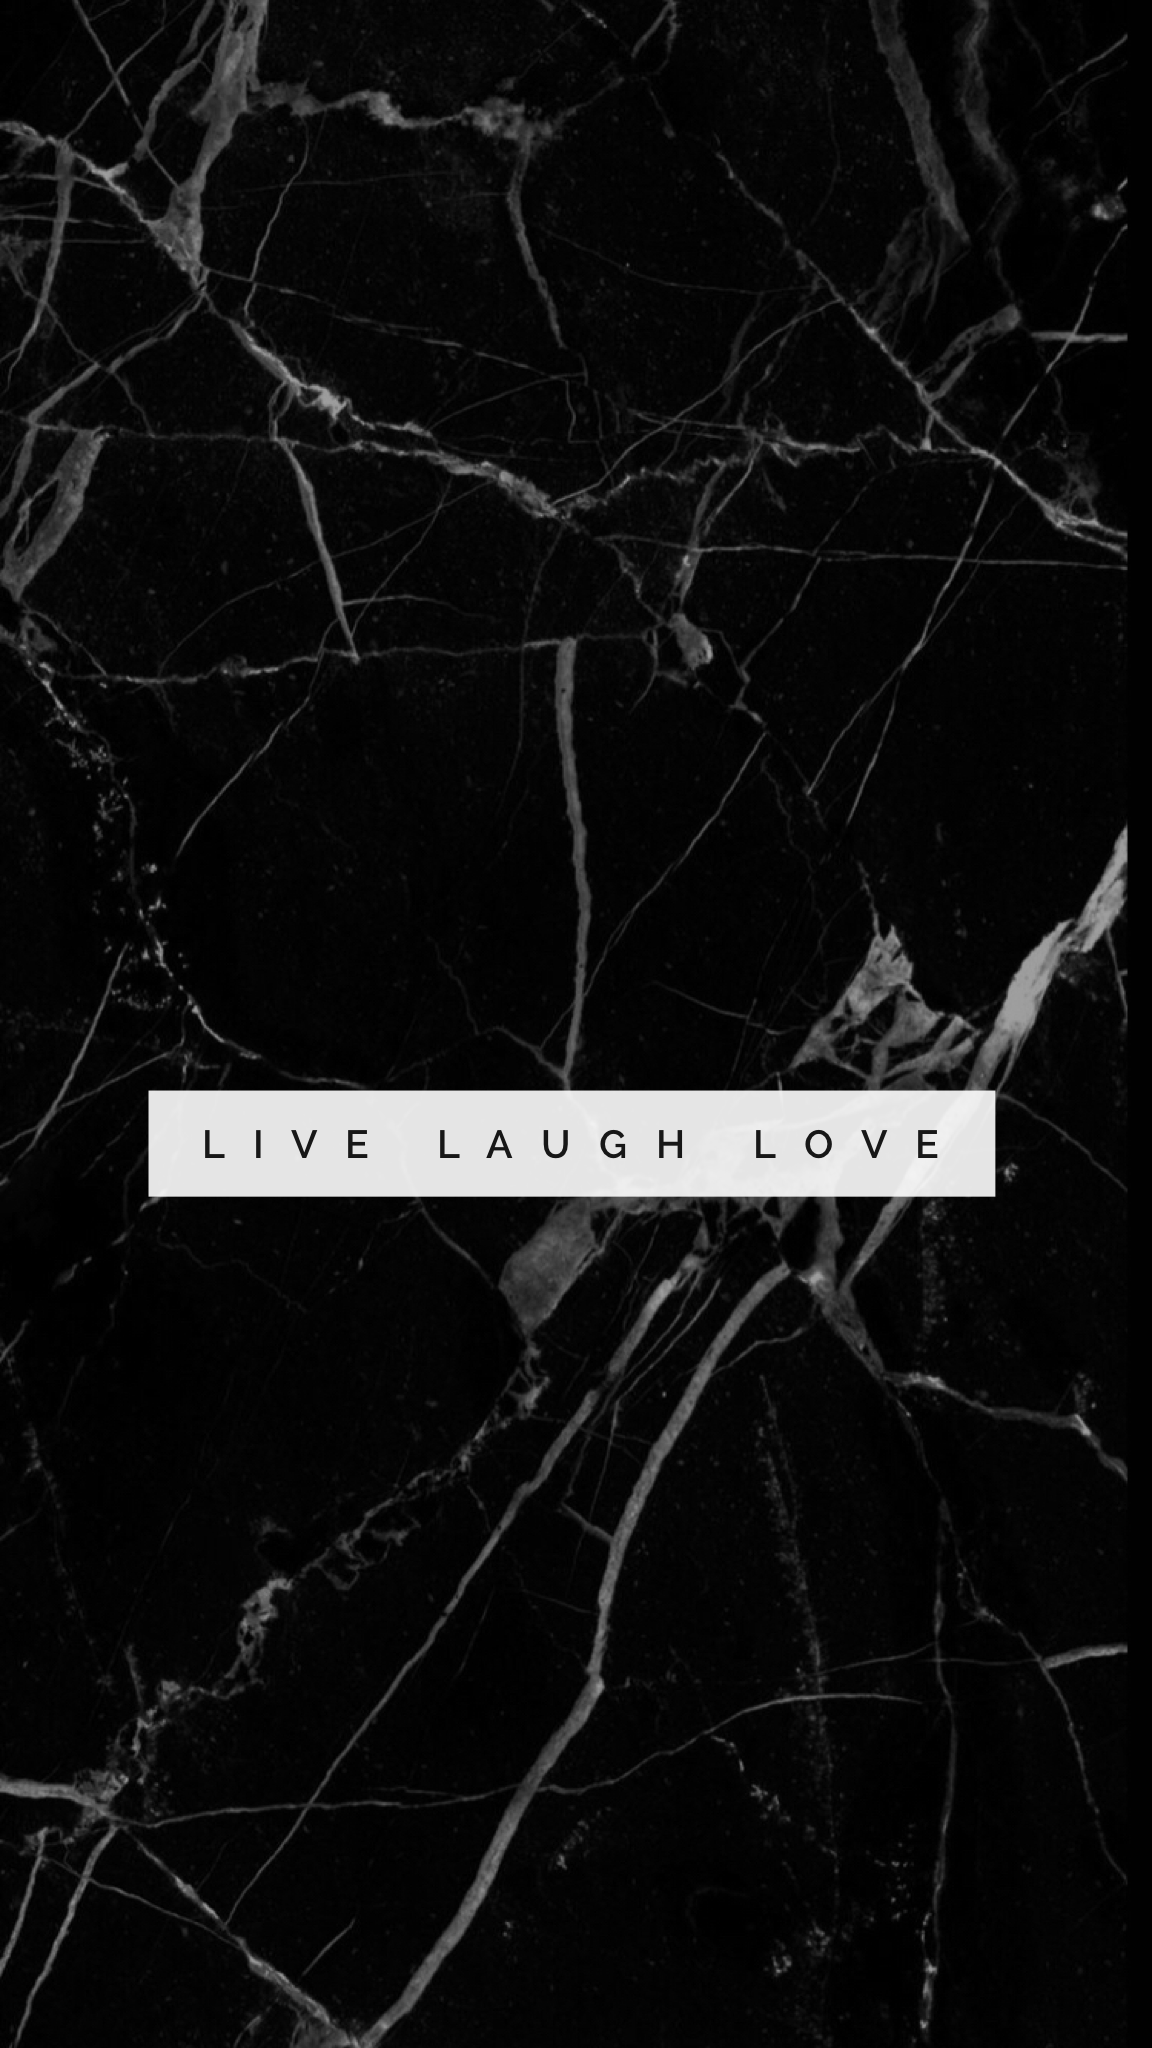 Wallpaper Wall Background Iphone Android Minimal Simple Quote Hd Black White Marble Achtergronden Wallpaper Achtergronden Iphone Achtergrond